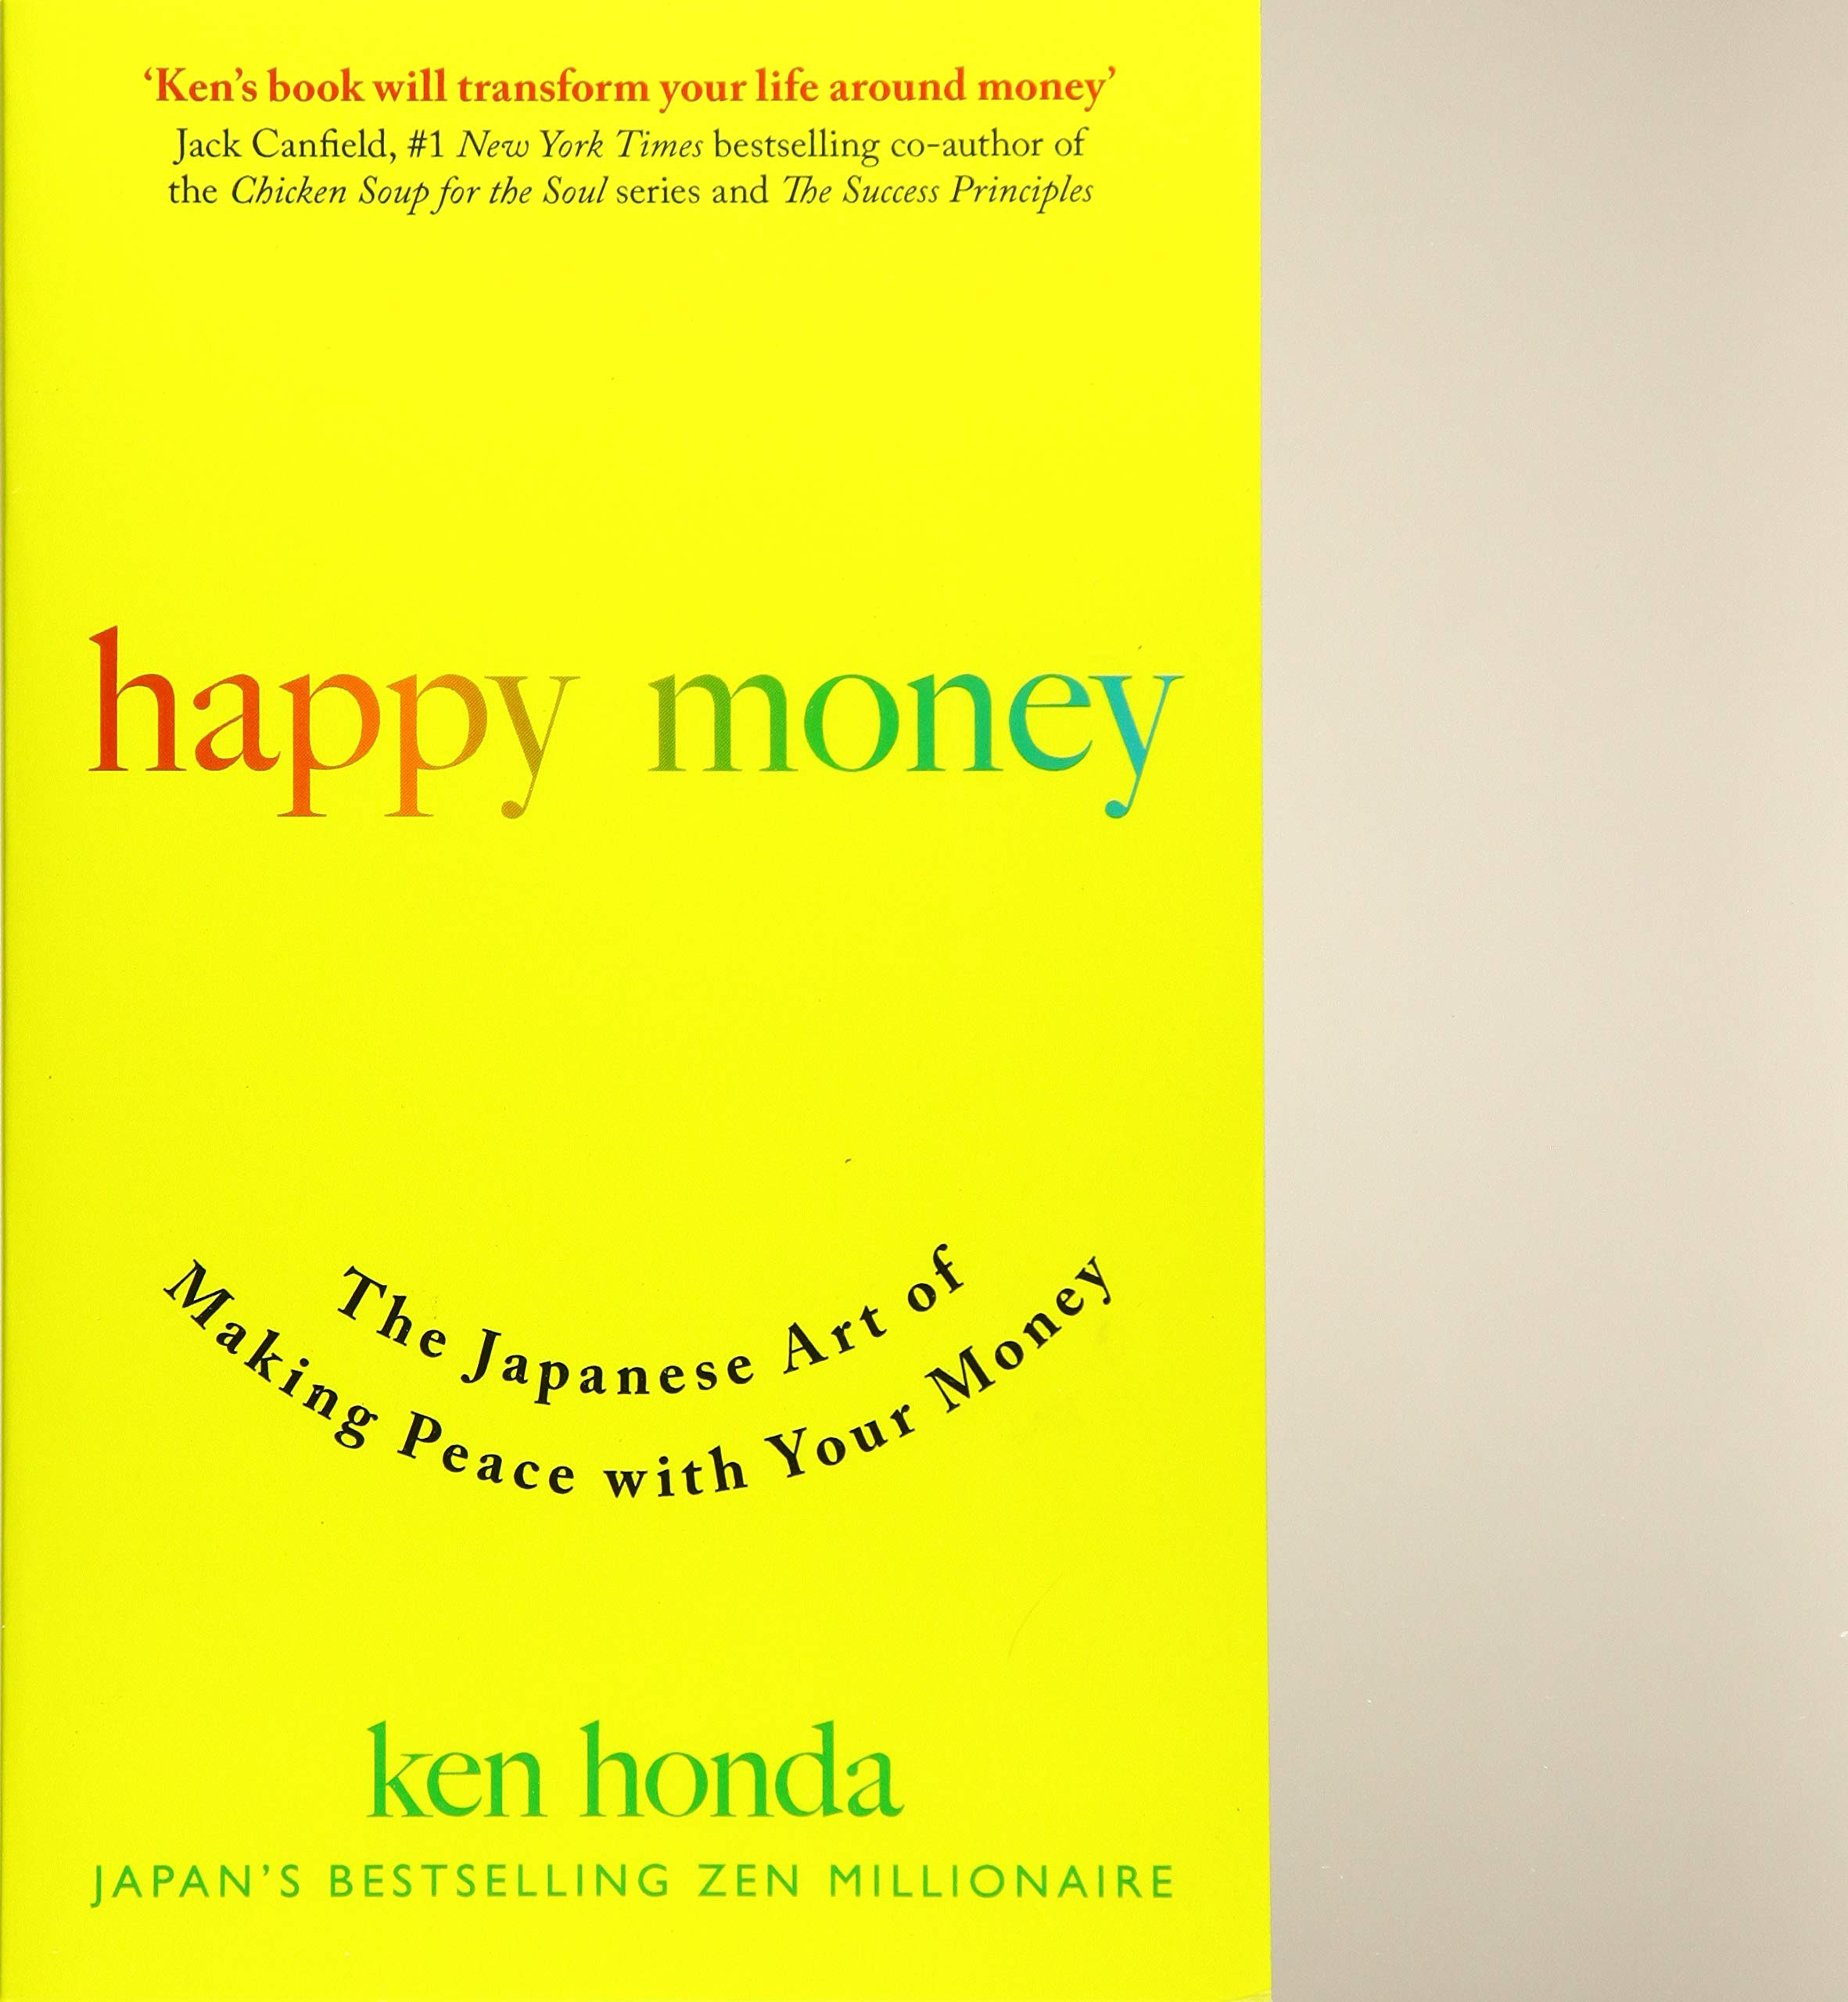 19 Best Books on Happiness: How to Live a Happy Life Full of Joy